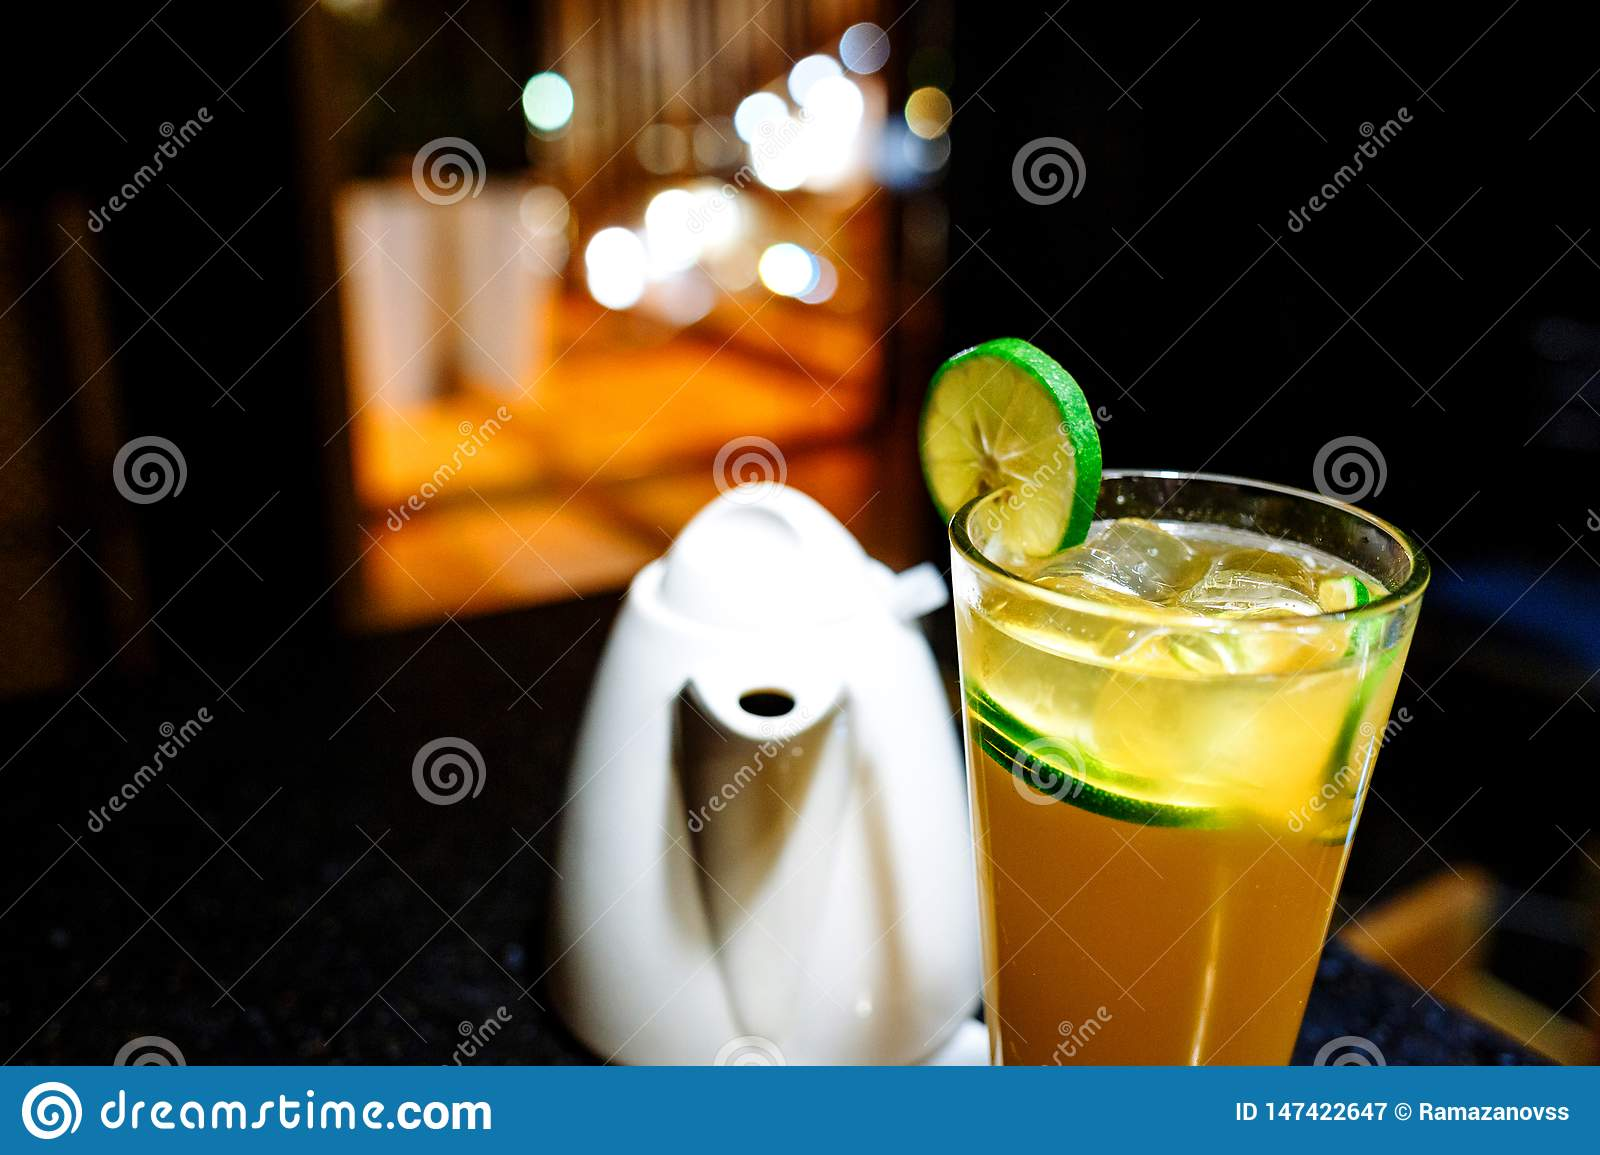 Orange cocktail with lime and teapot on dark background